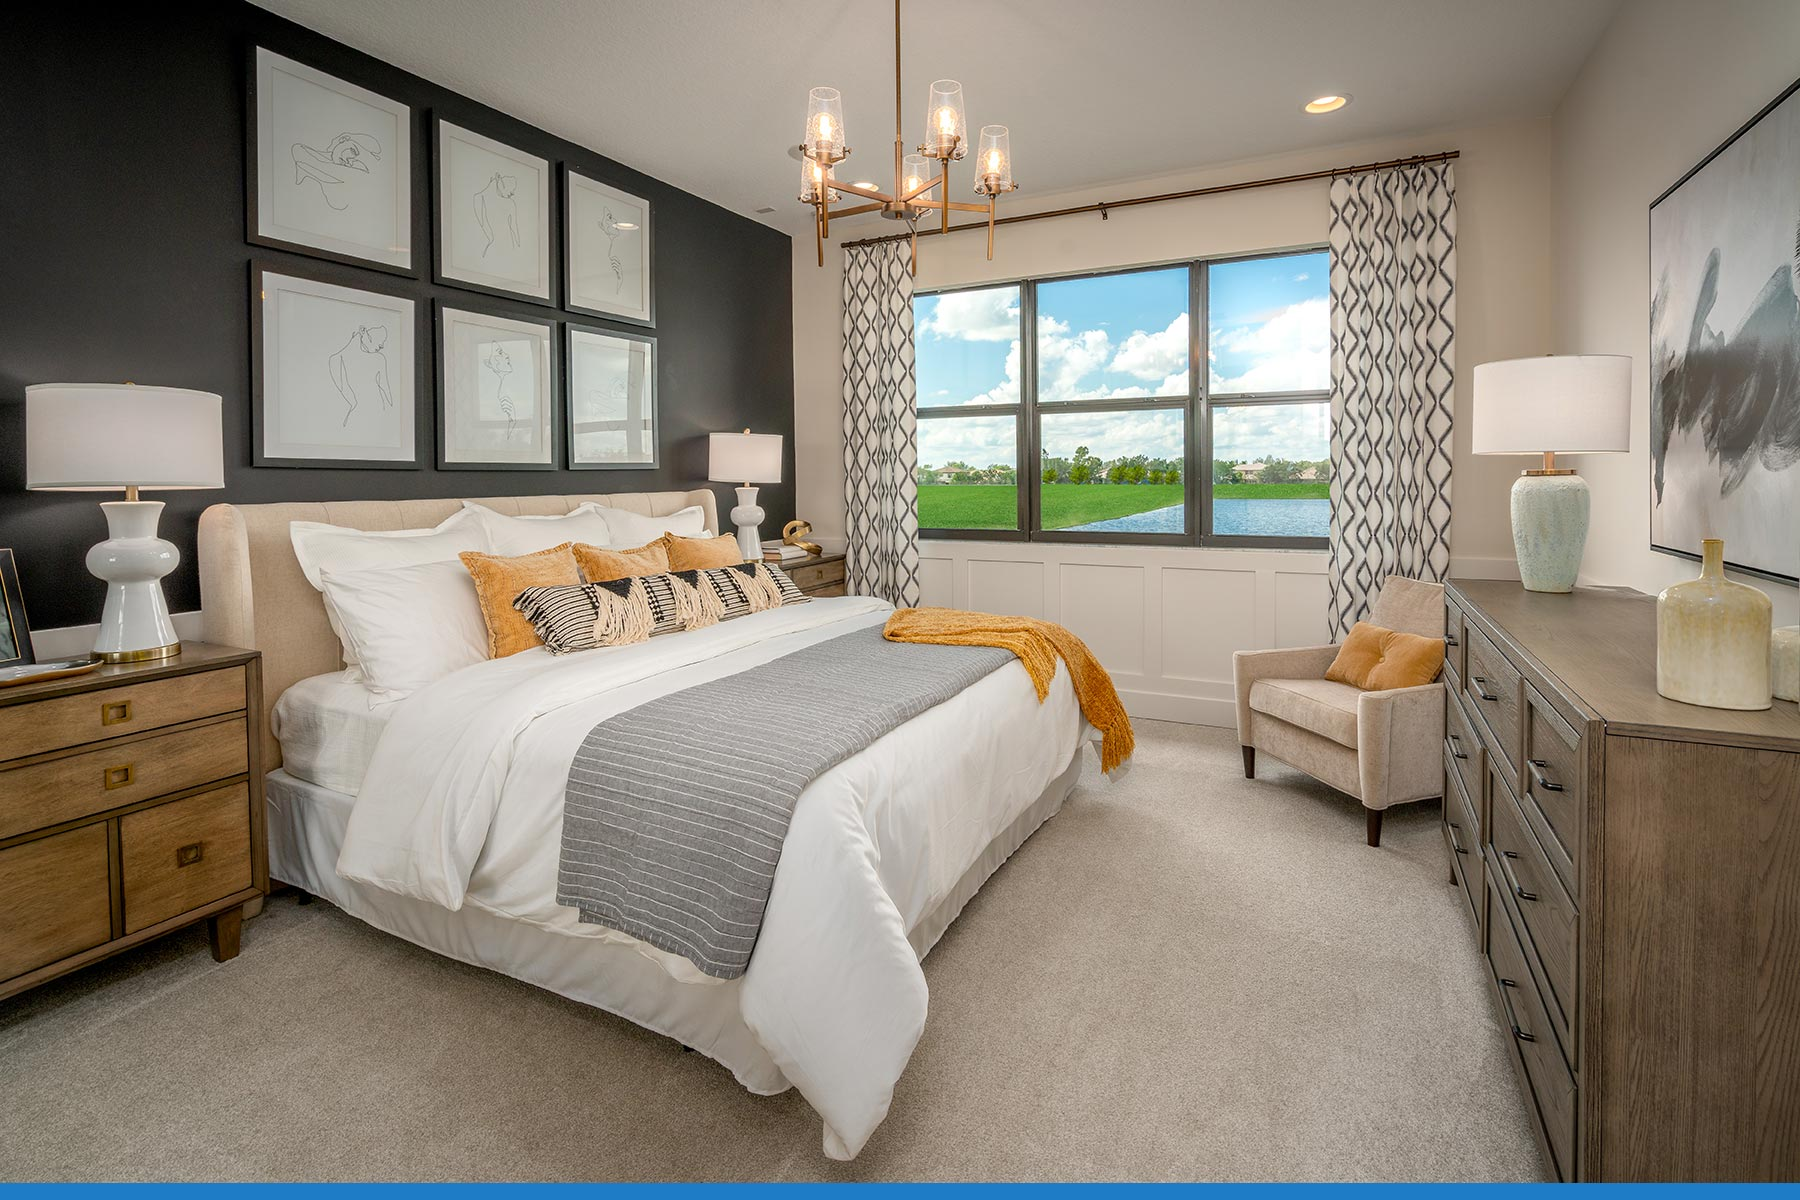 Ellery Plan Bedroom at Saddlewood in Lake Worth Florida by Mattamy Homes